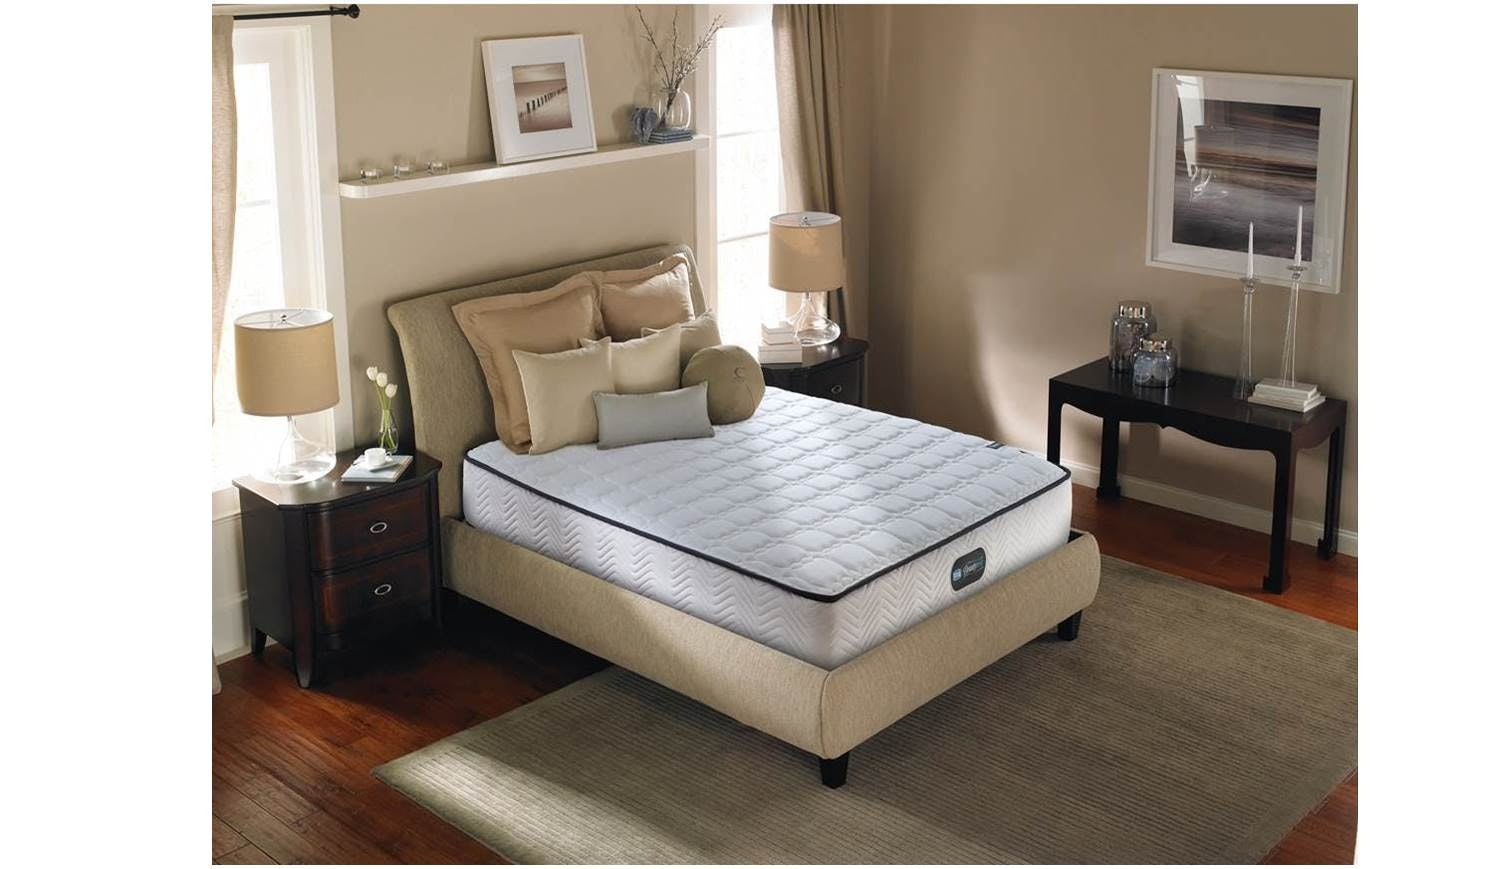 simmons beautyrest classic. Simmons Beautyrest Affinity Classic Original Coil Queen Size Mattress E